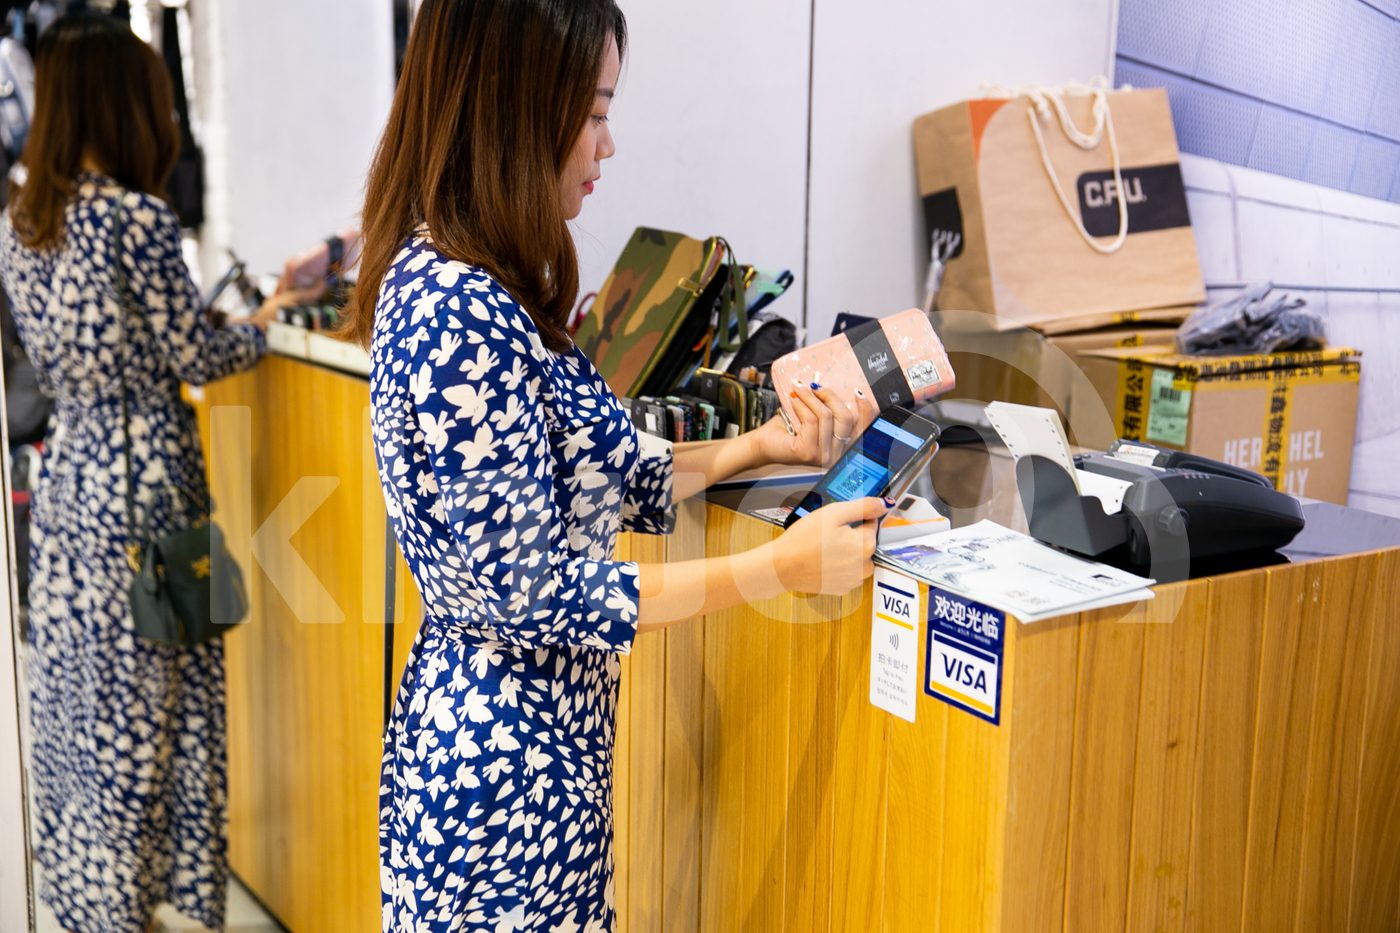 Young adult woman scanning QR code to pay at a shop